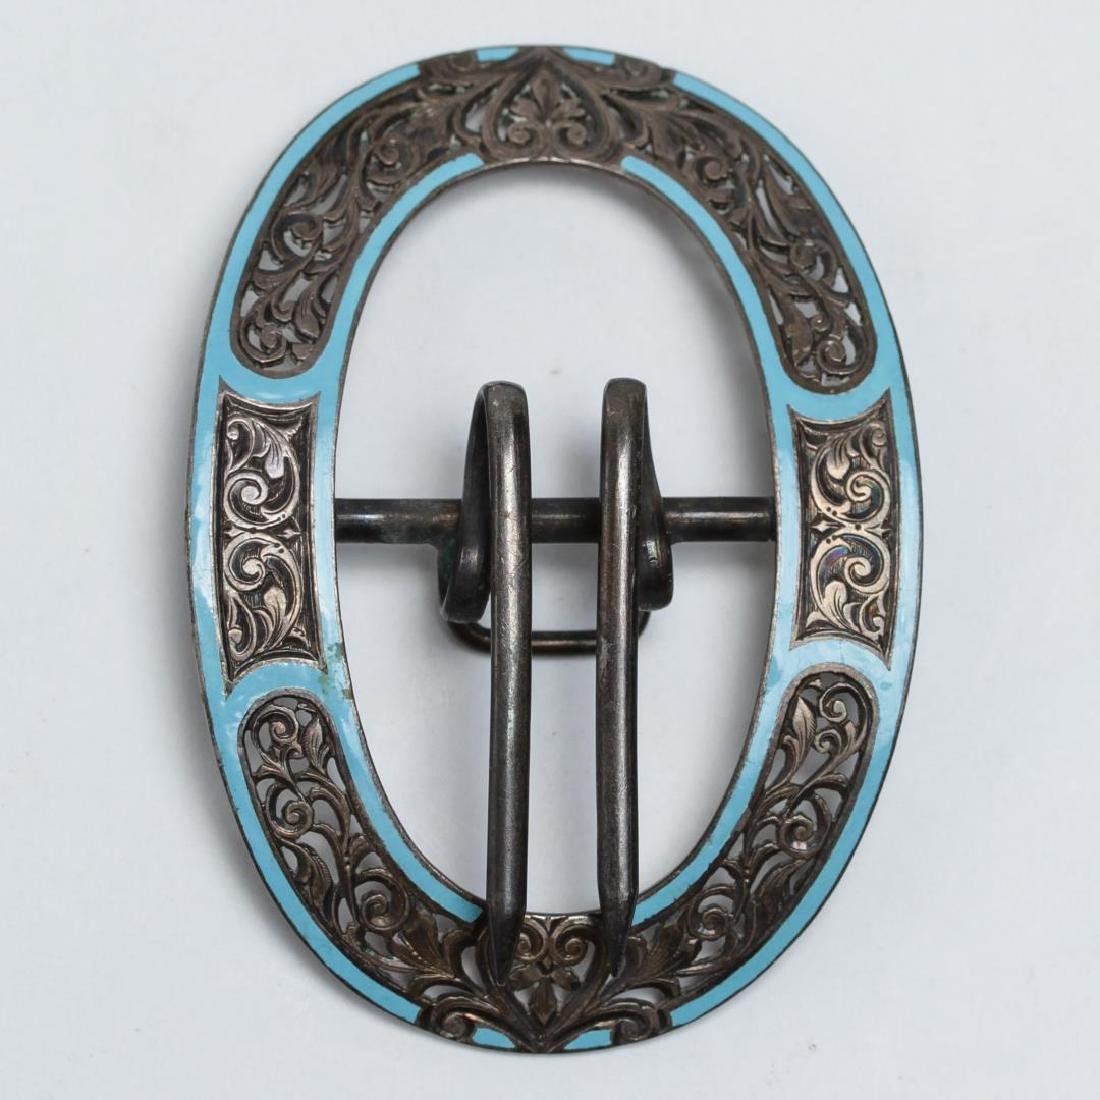 Enameled Silver Belt Buckle, Chased & w. Champleve